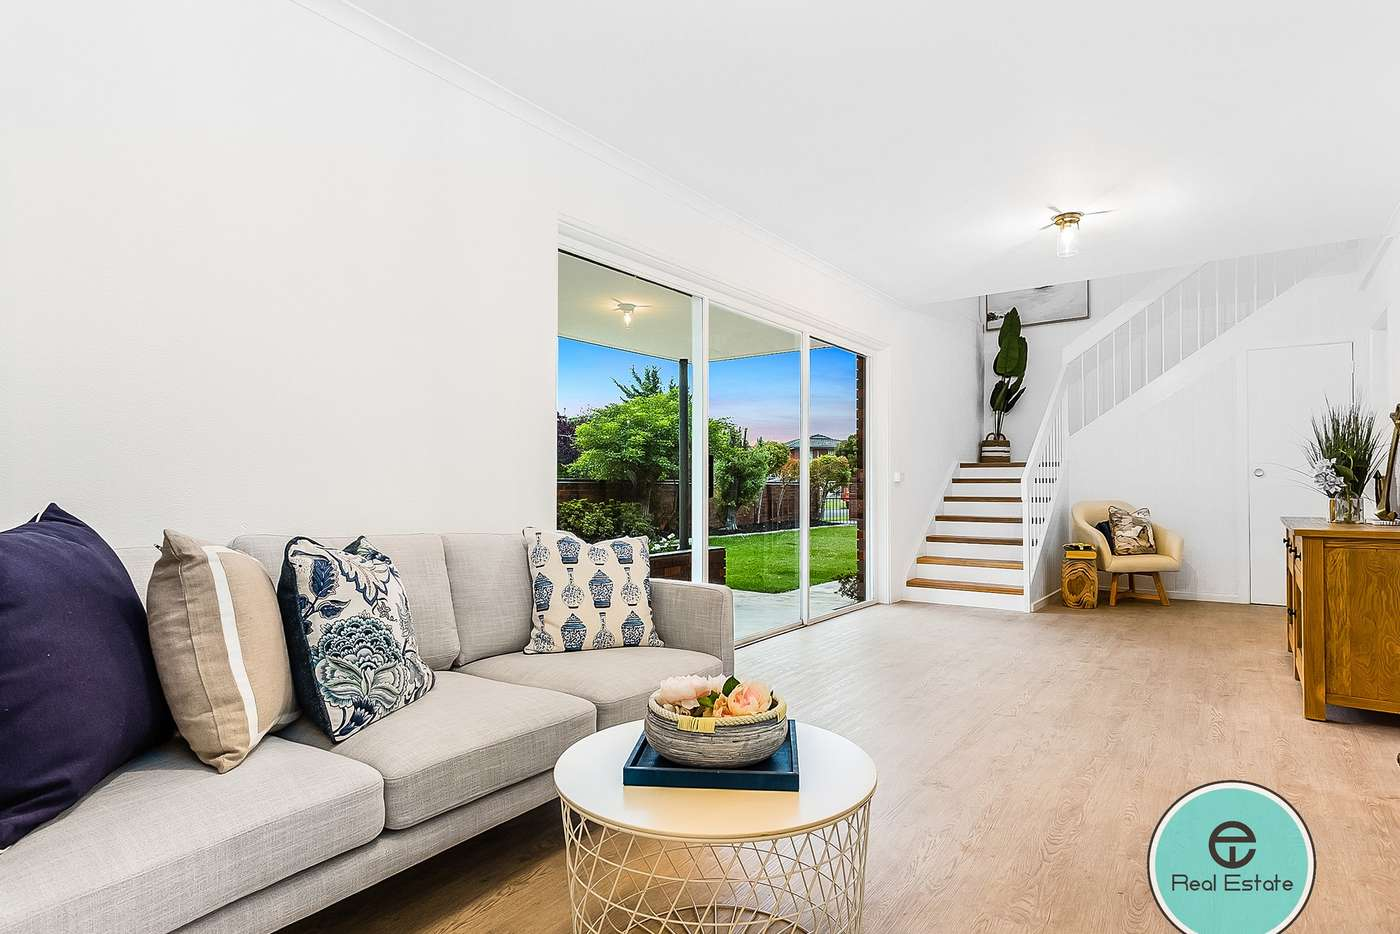 Fifth view of Homely house listing, 12 Marina Drive, Paynesville VIC 3880